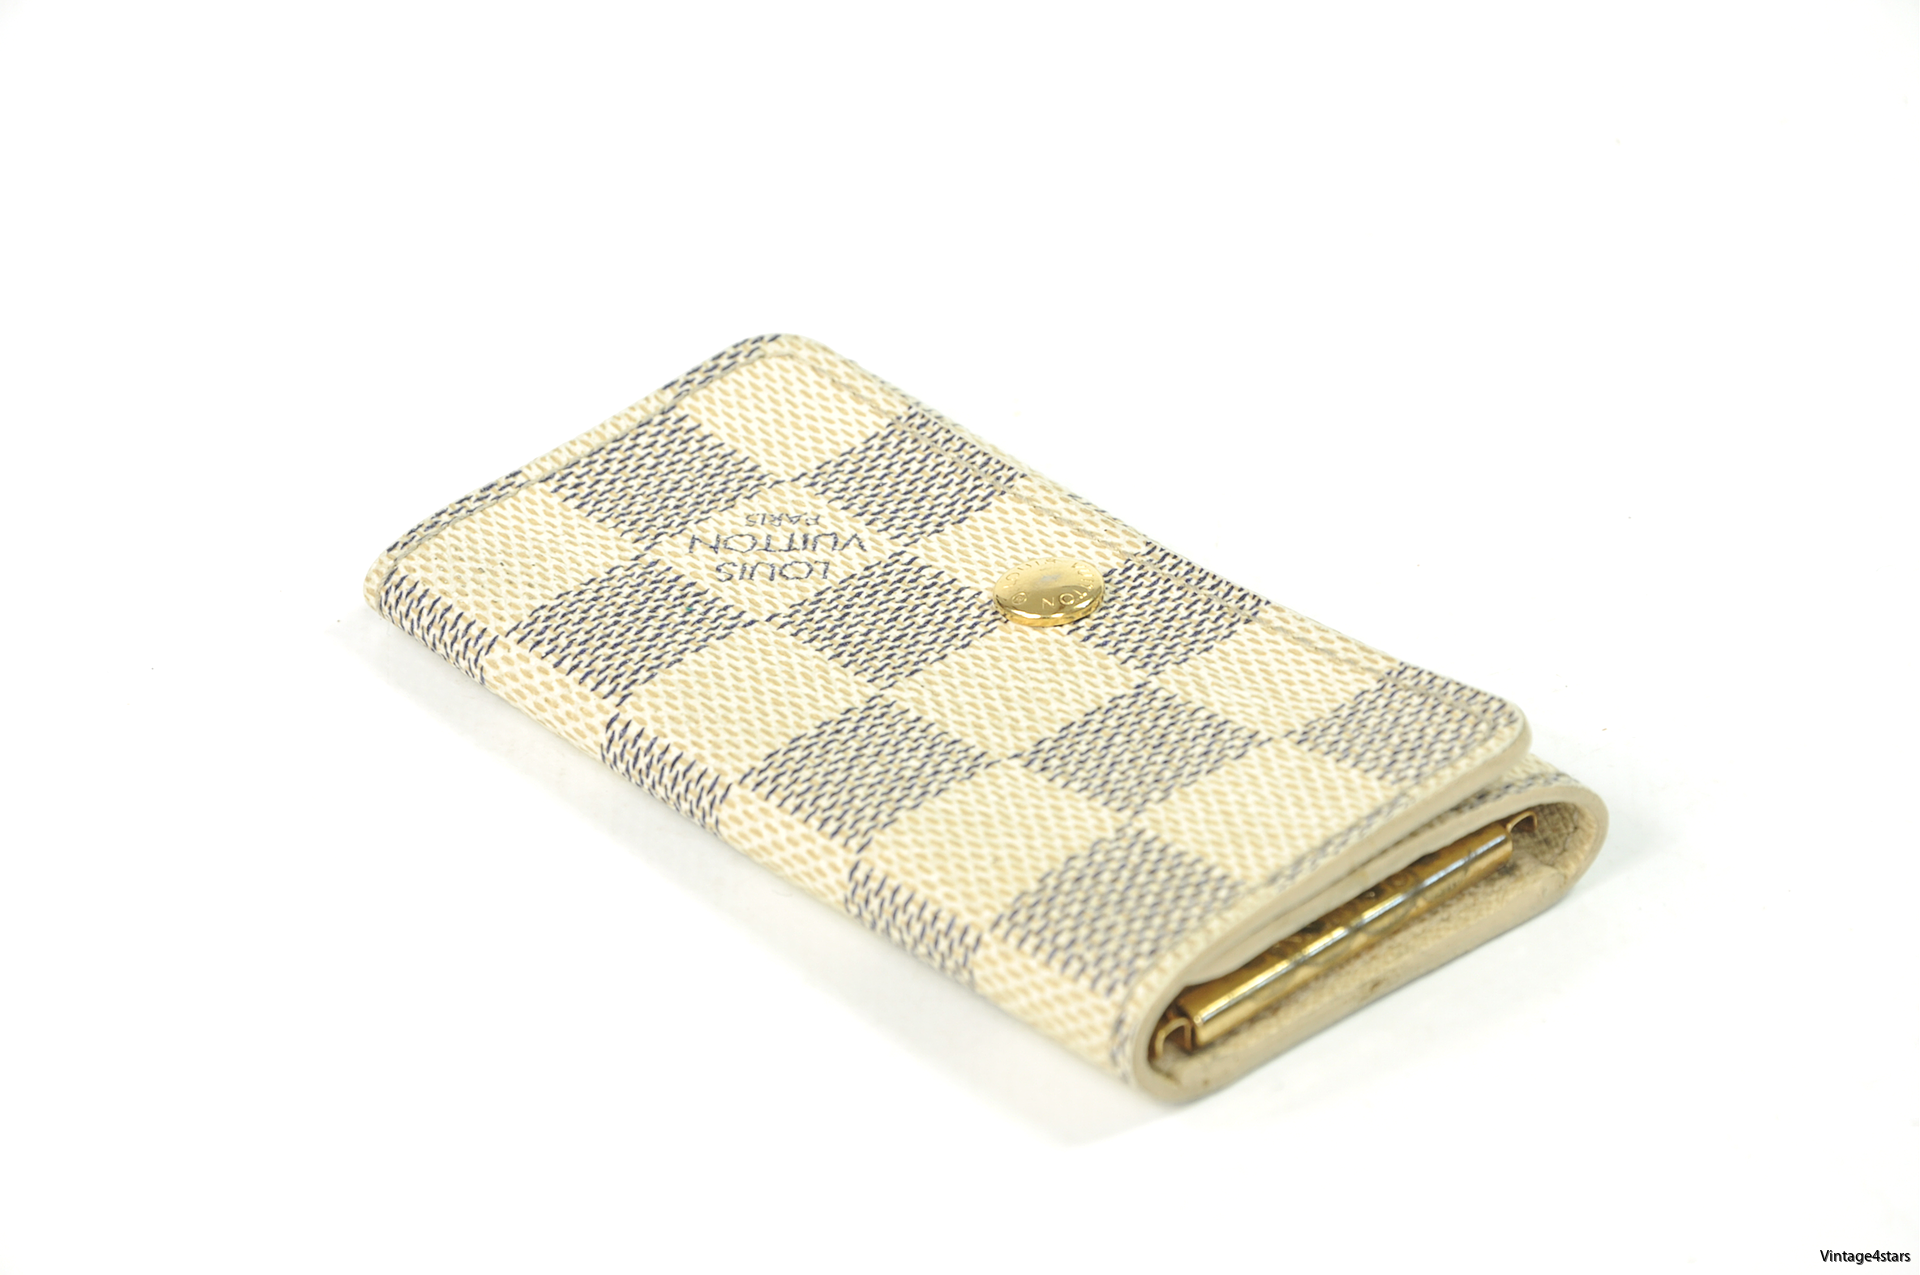 Louis Vuitton 4 Keys Damier Azur 2